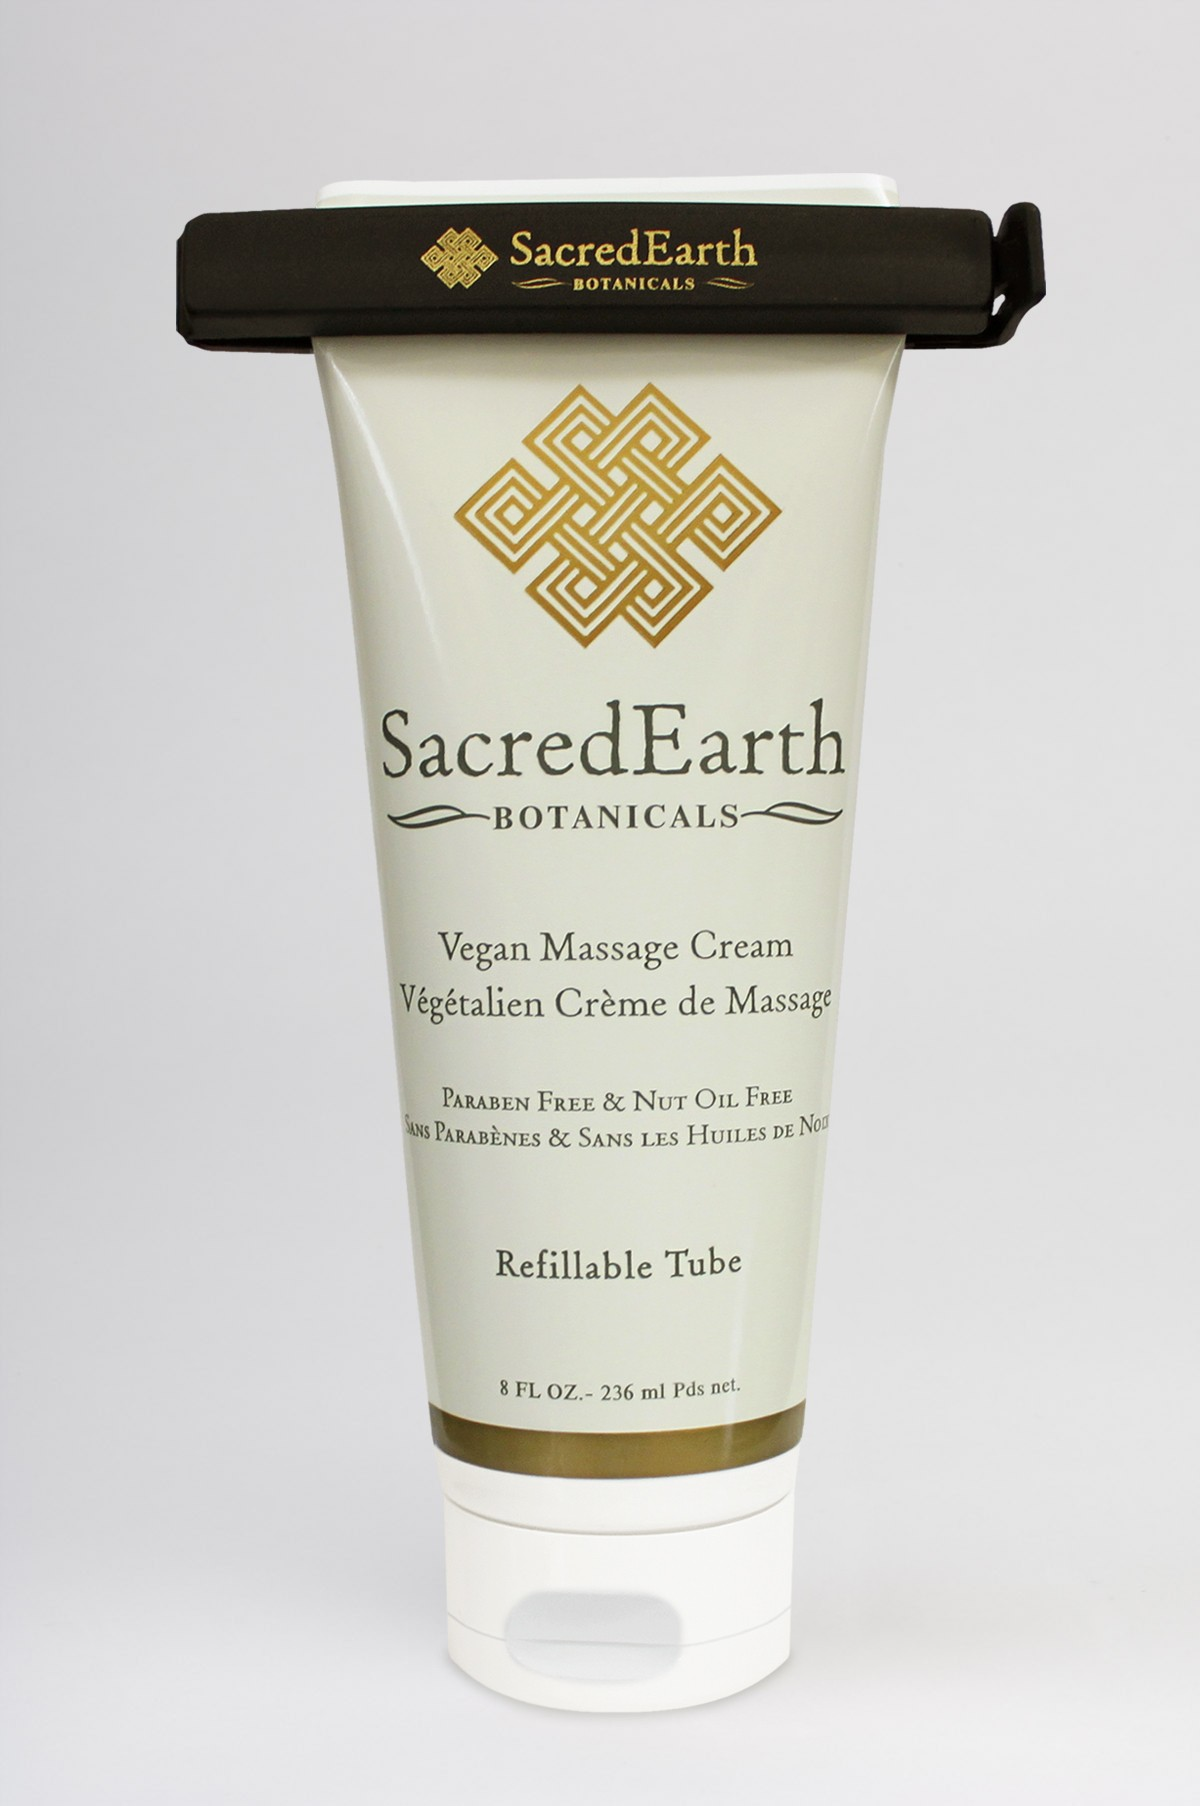 Sacred Earth Vegan Massage Cream 8 oz